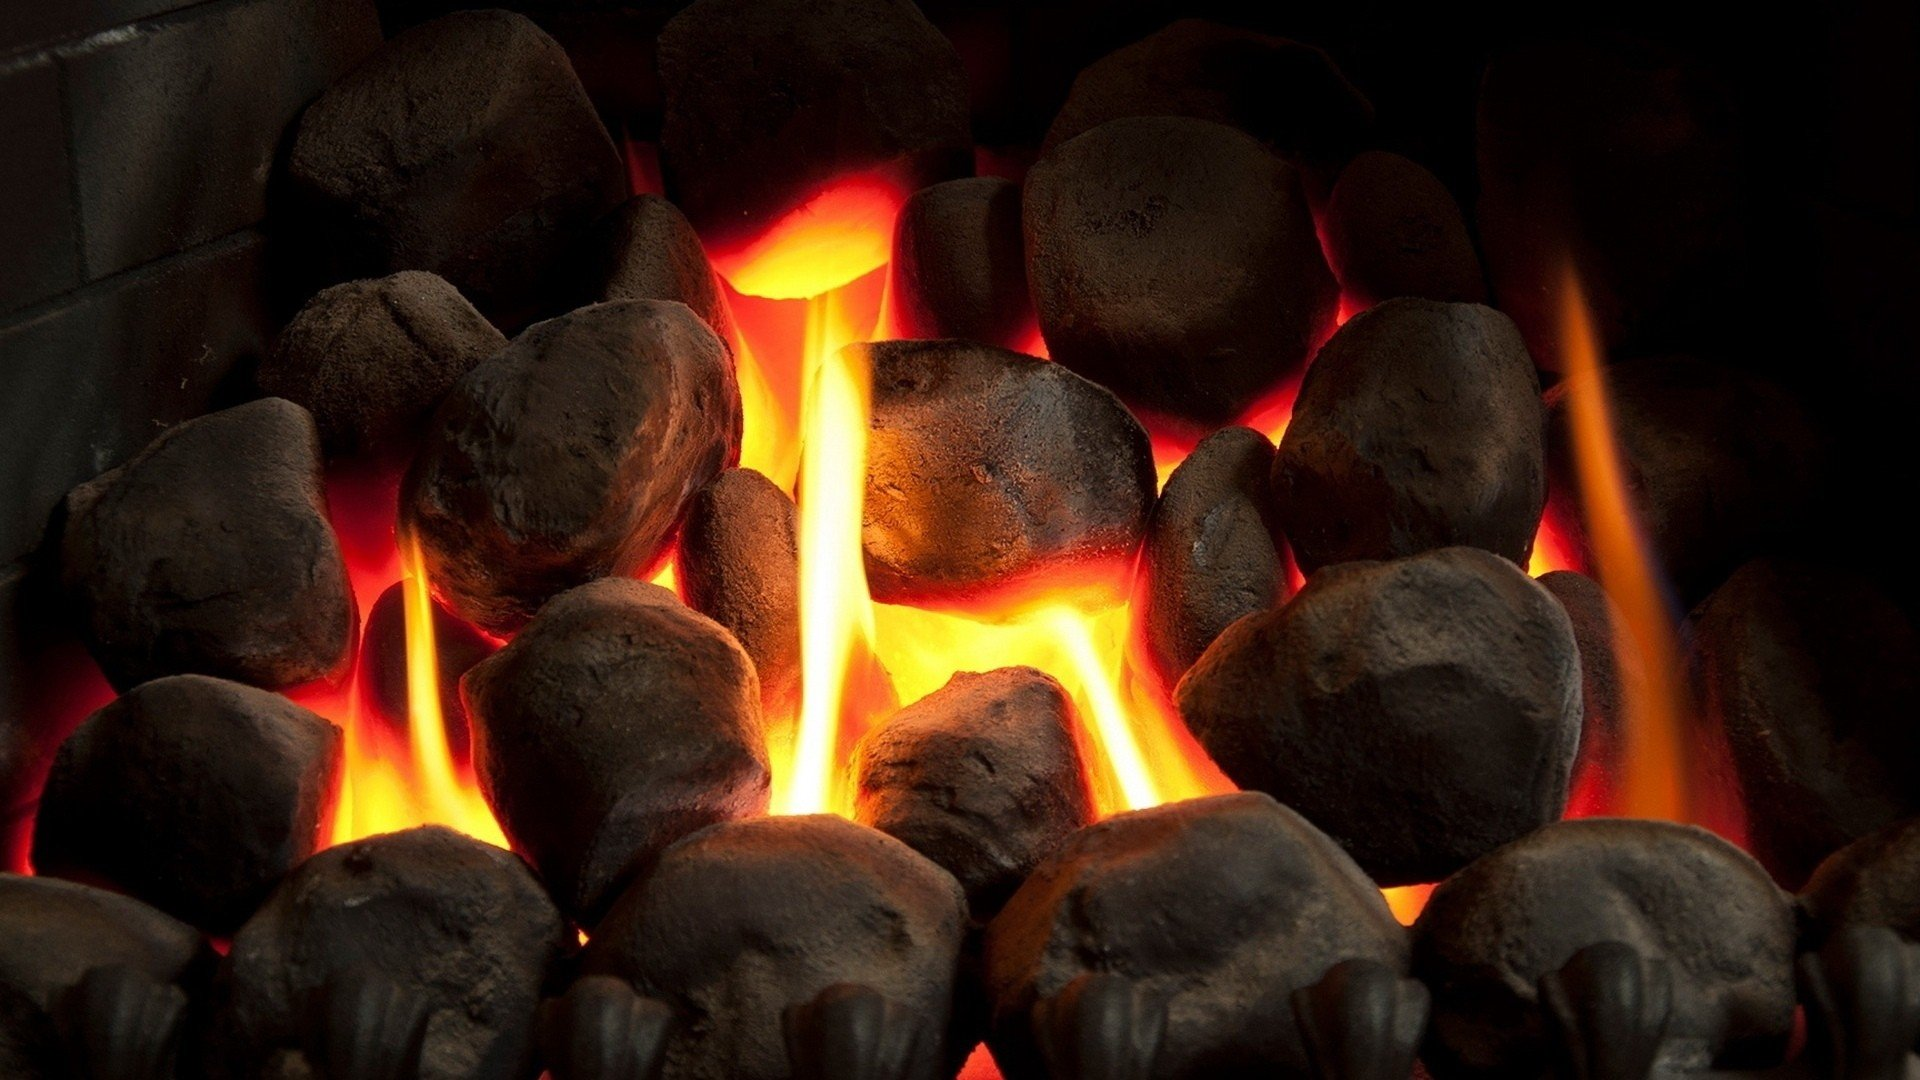 Fire Stones For Fireplace Fire Stones Fireplace Bricks Metal Long Exposure Wallpapers